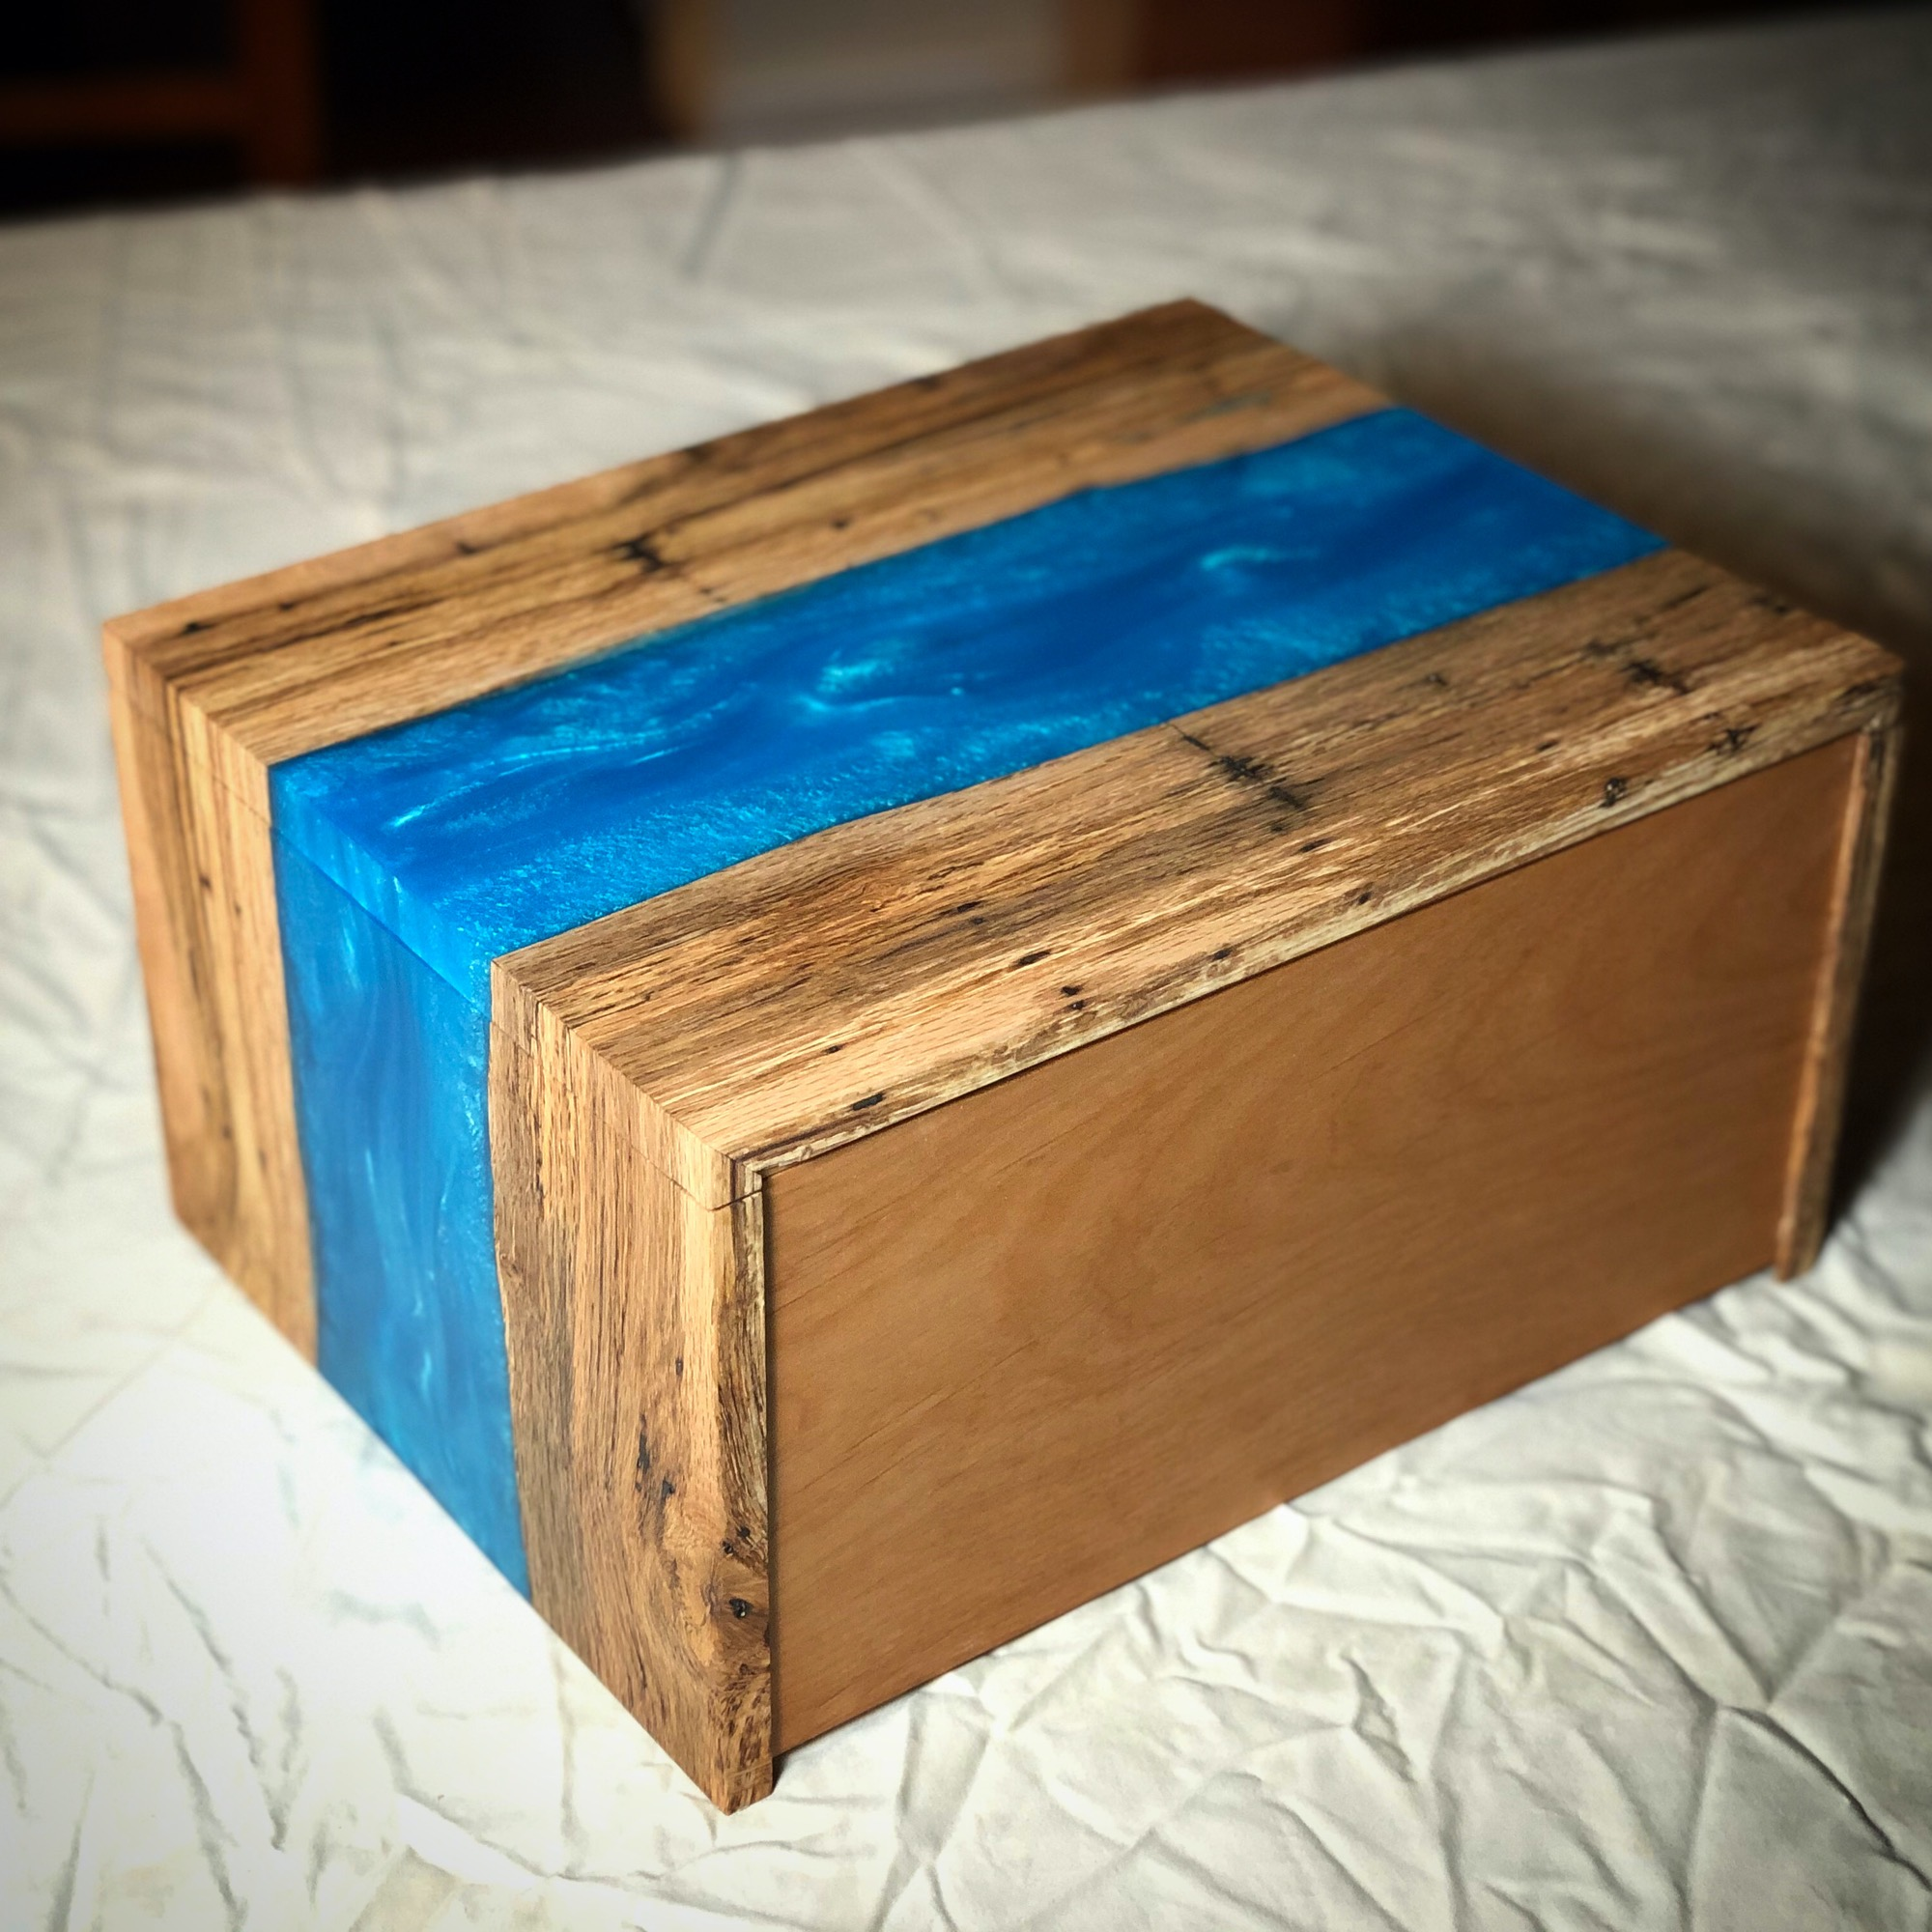 River Box - lid closed - woodworking